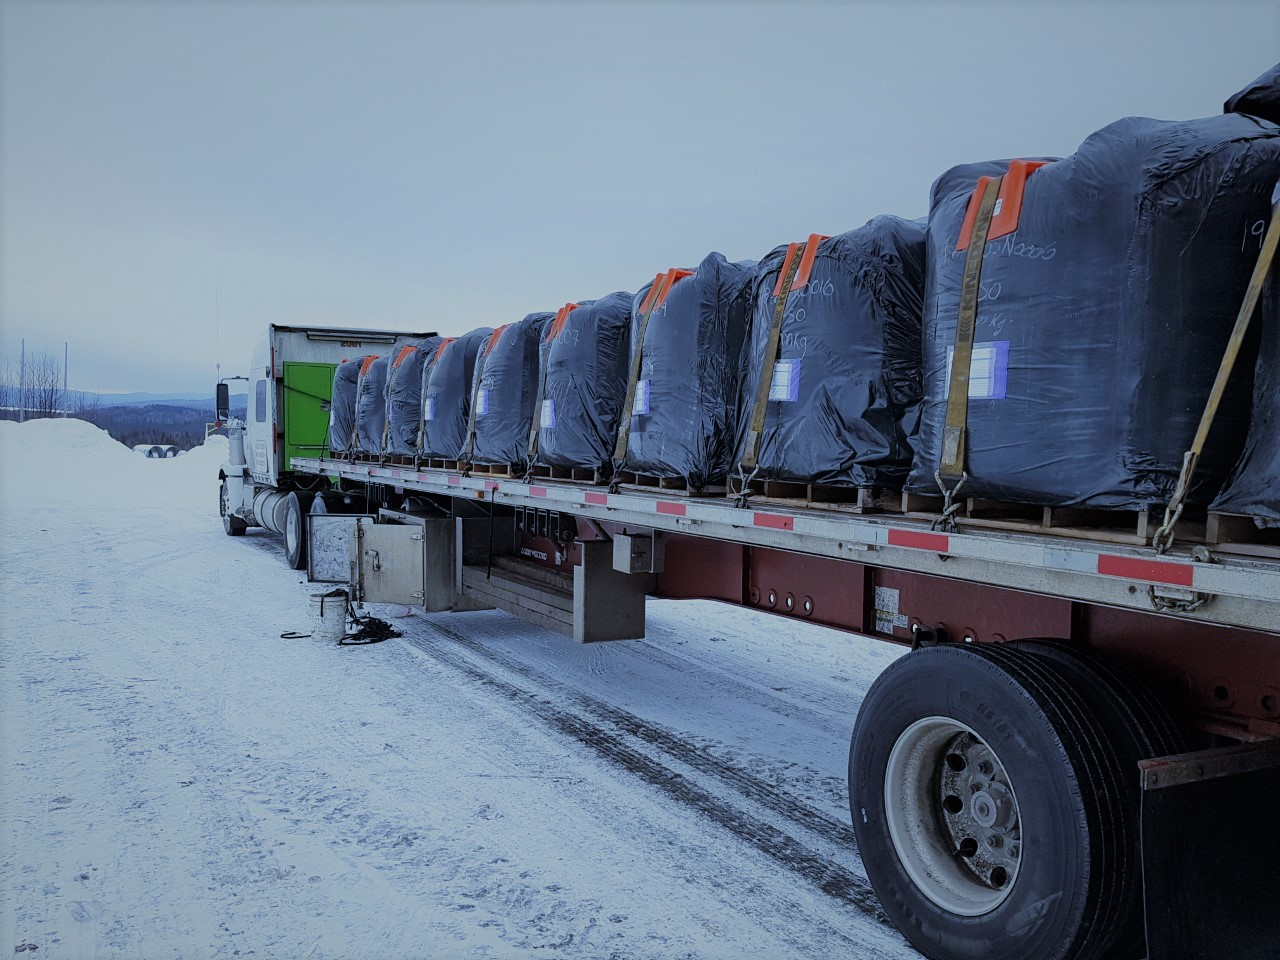 Truck loaded with graphite packed on a snow-covered road